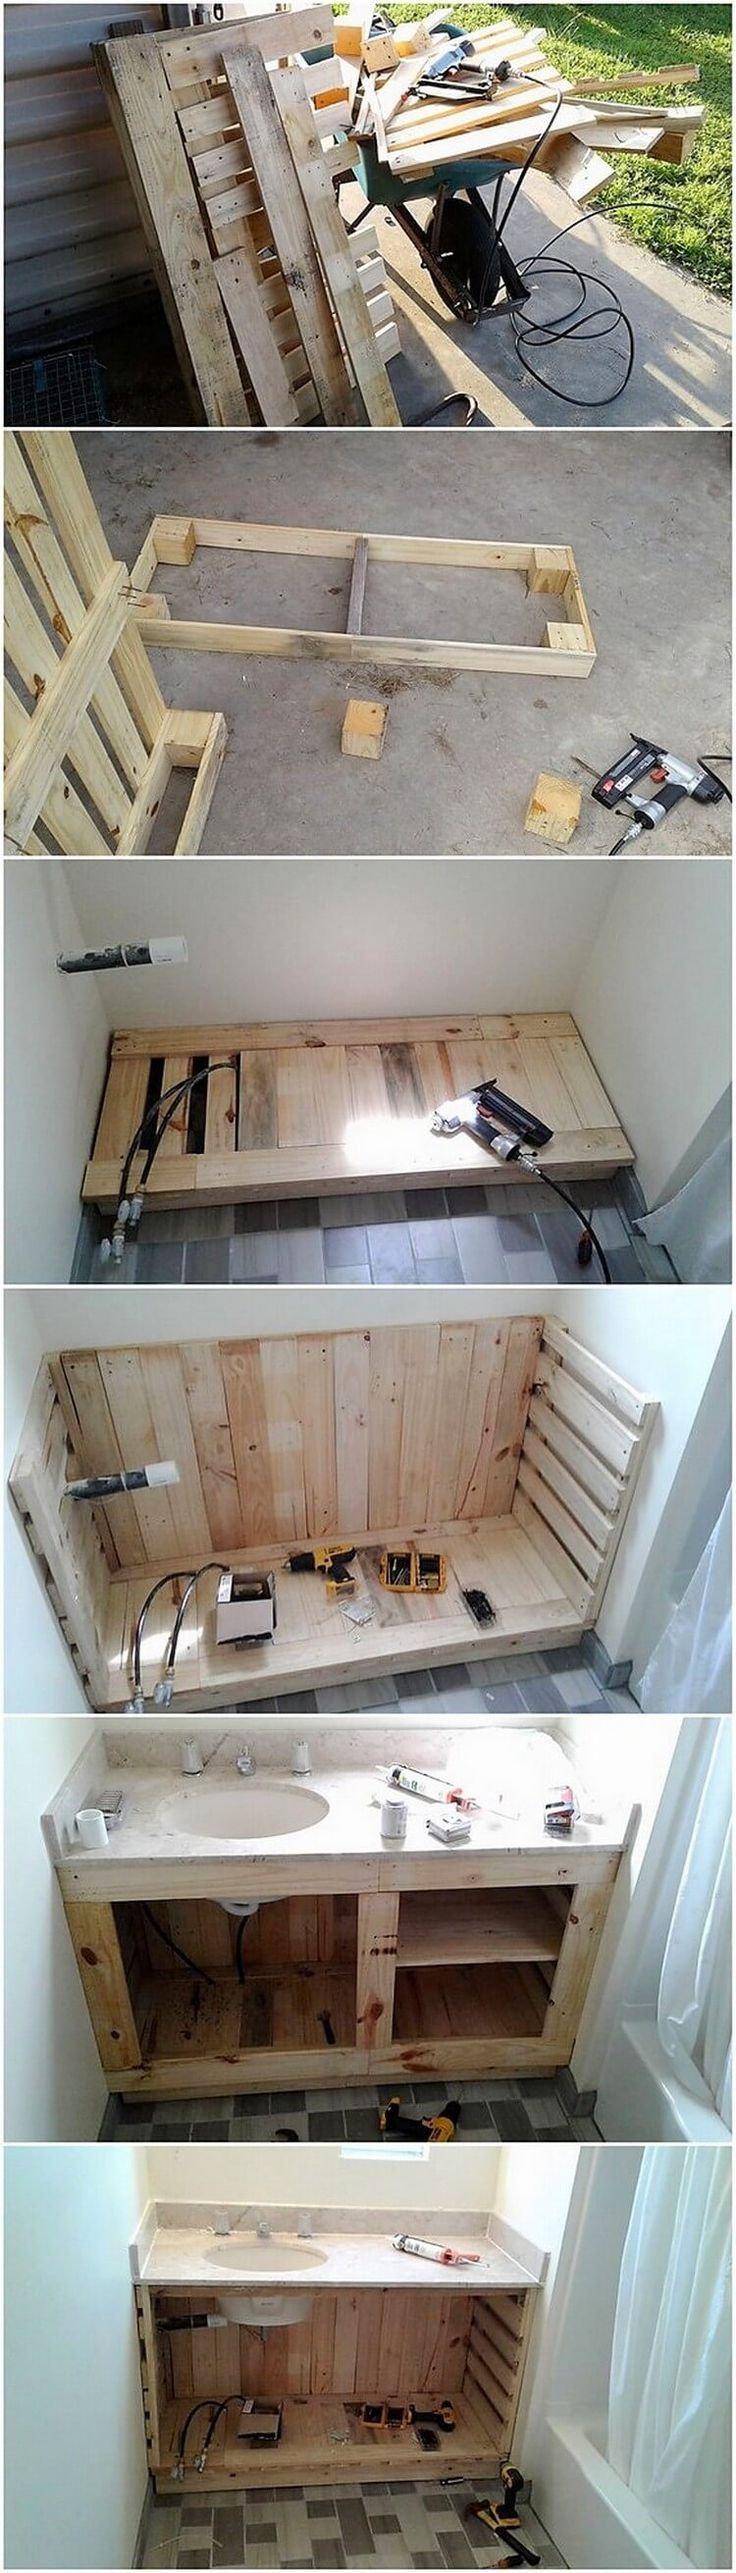 For your bathroom areas, the use of wood pallet can look amazing when it is being put together for the designing of the sink areas. You can arrange the pallet plank stacking for the creation of the sink design where the coverage of the cabinets and shelving units is also part of it in the downside bottom area.